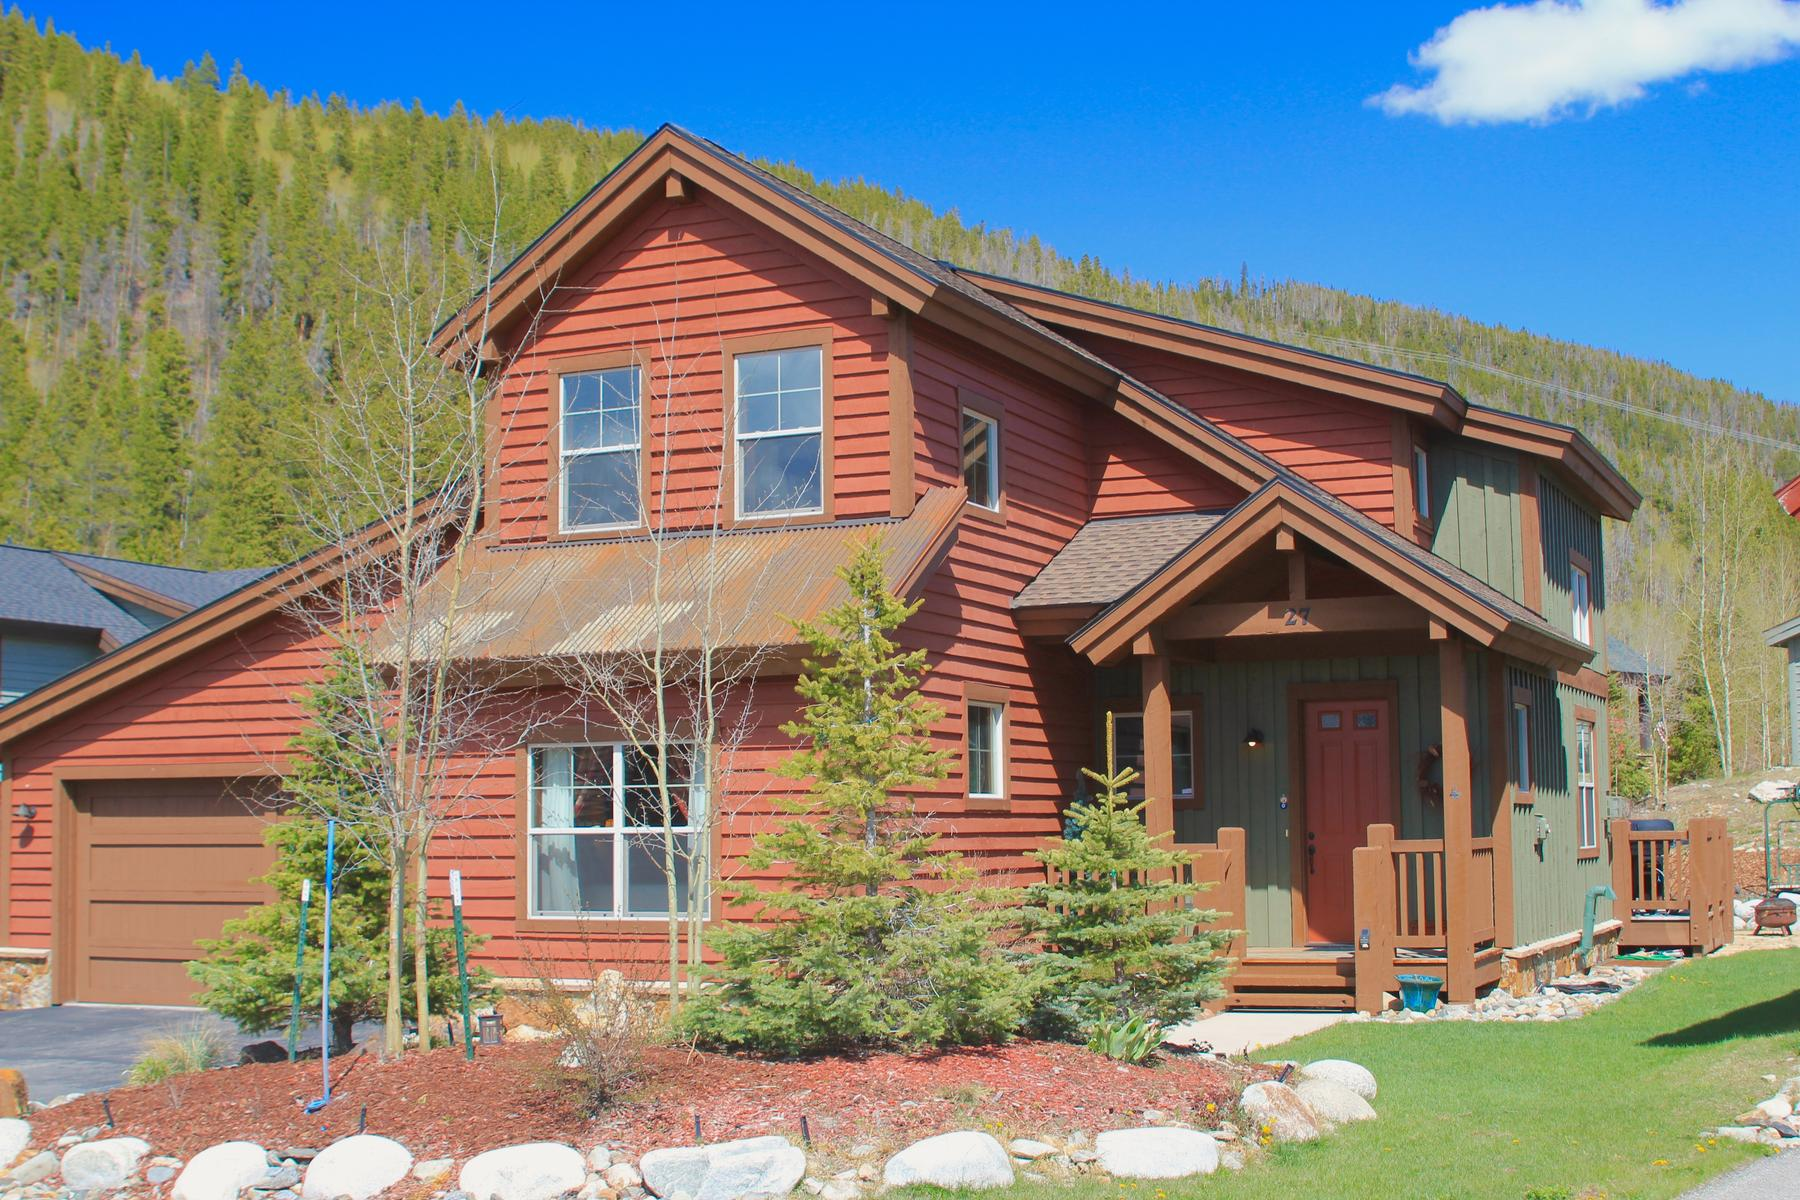 Single Family Home for Active at Vista Piont 27 Sheppard Circle Breckenridge, Colorado 80424 United States